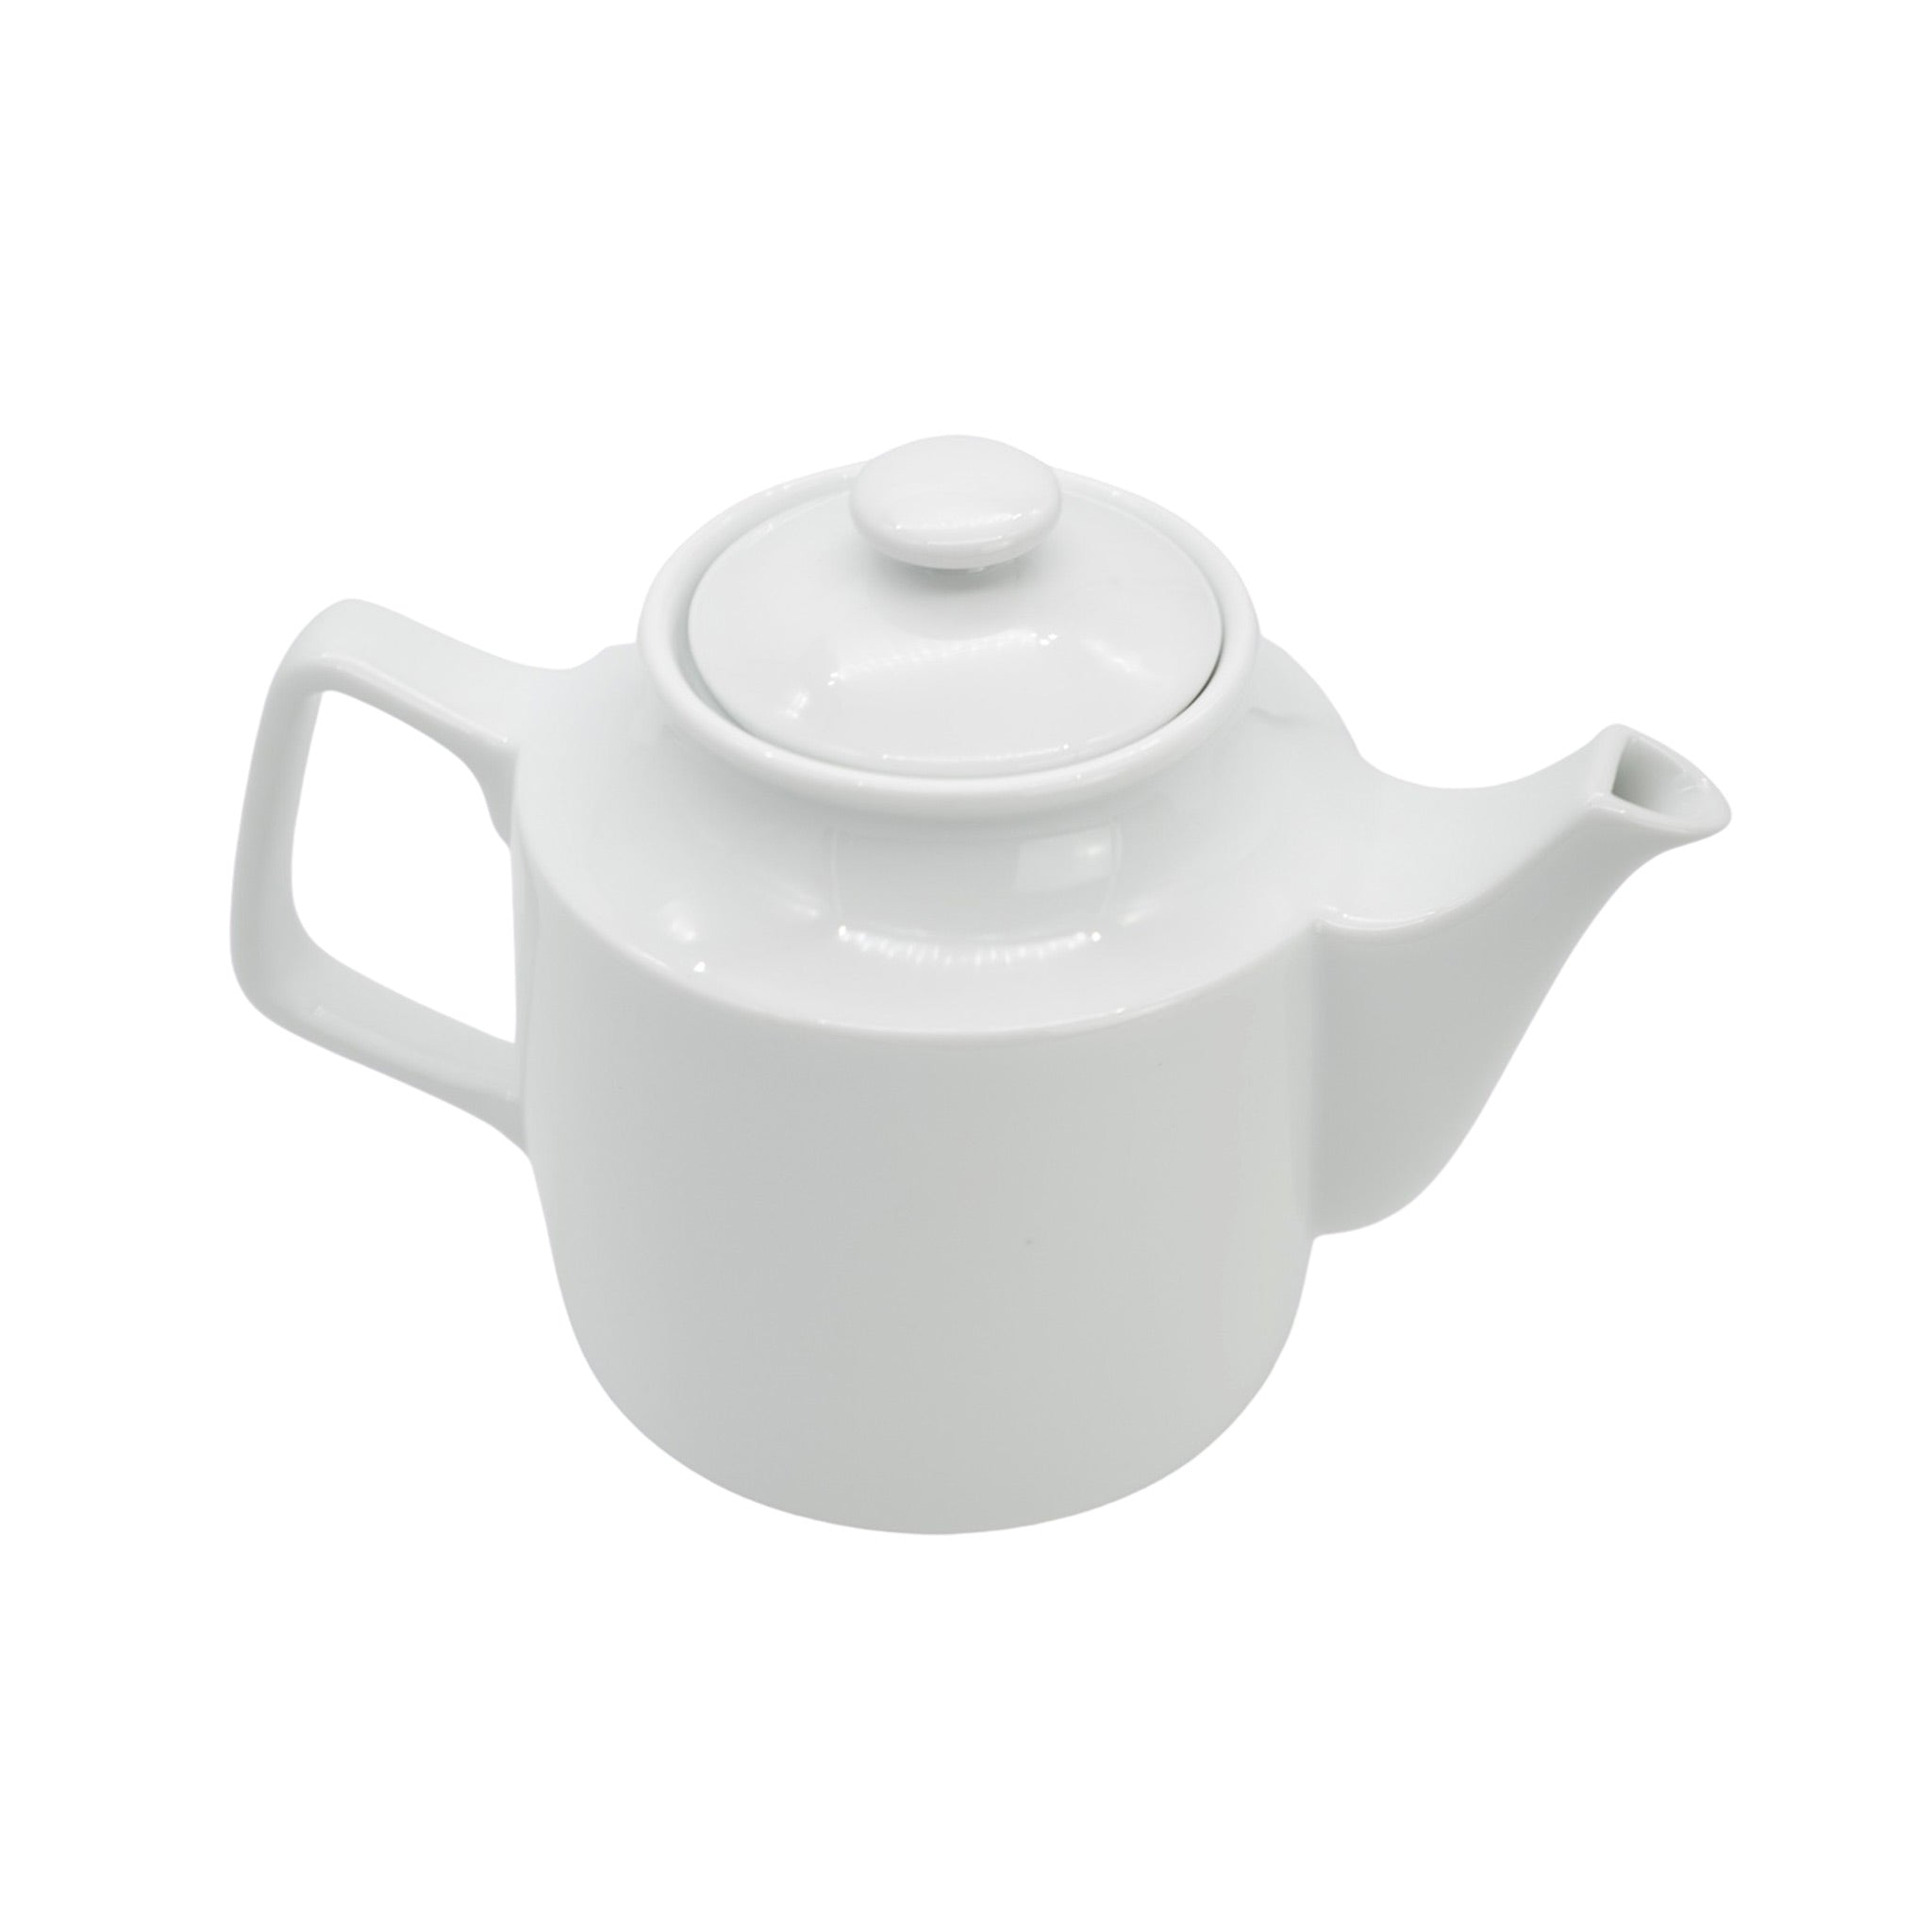 Jasmine White Artisan Tea Set 0.7L (Small Set)